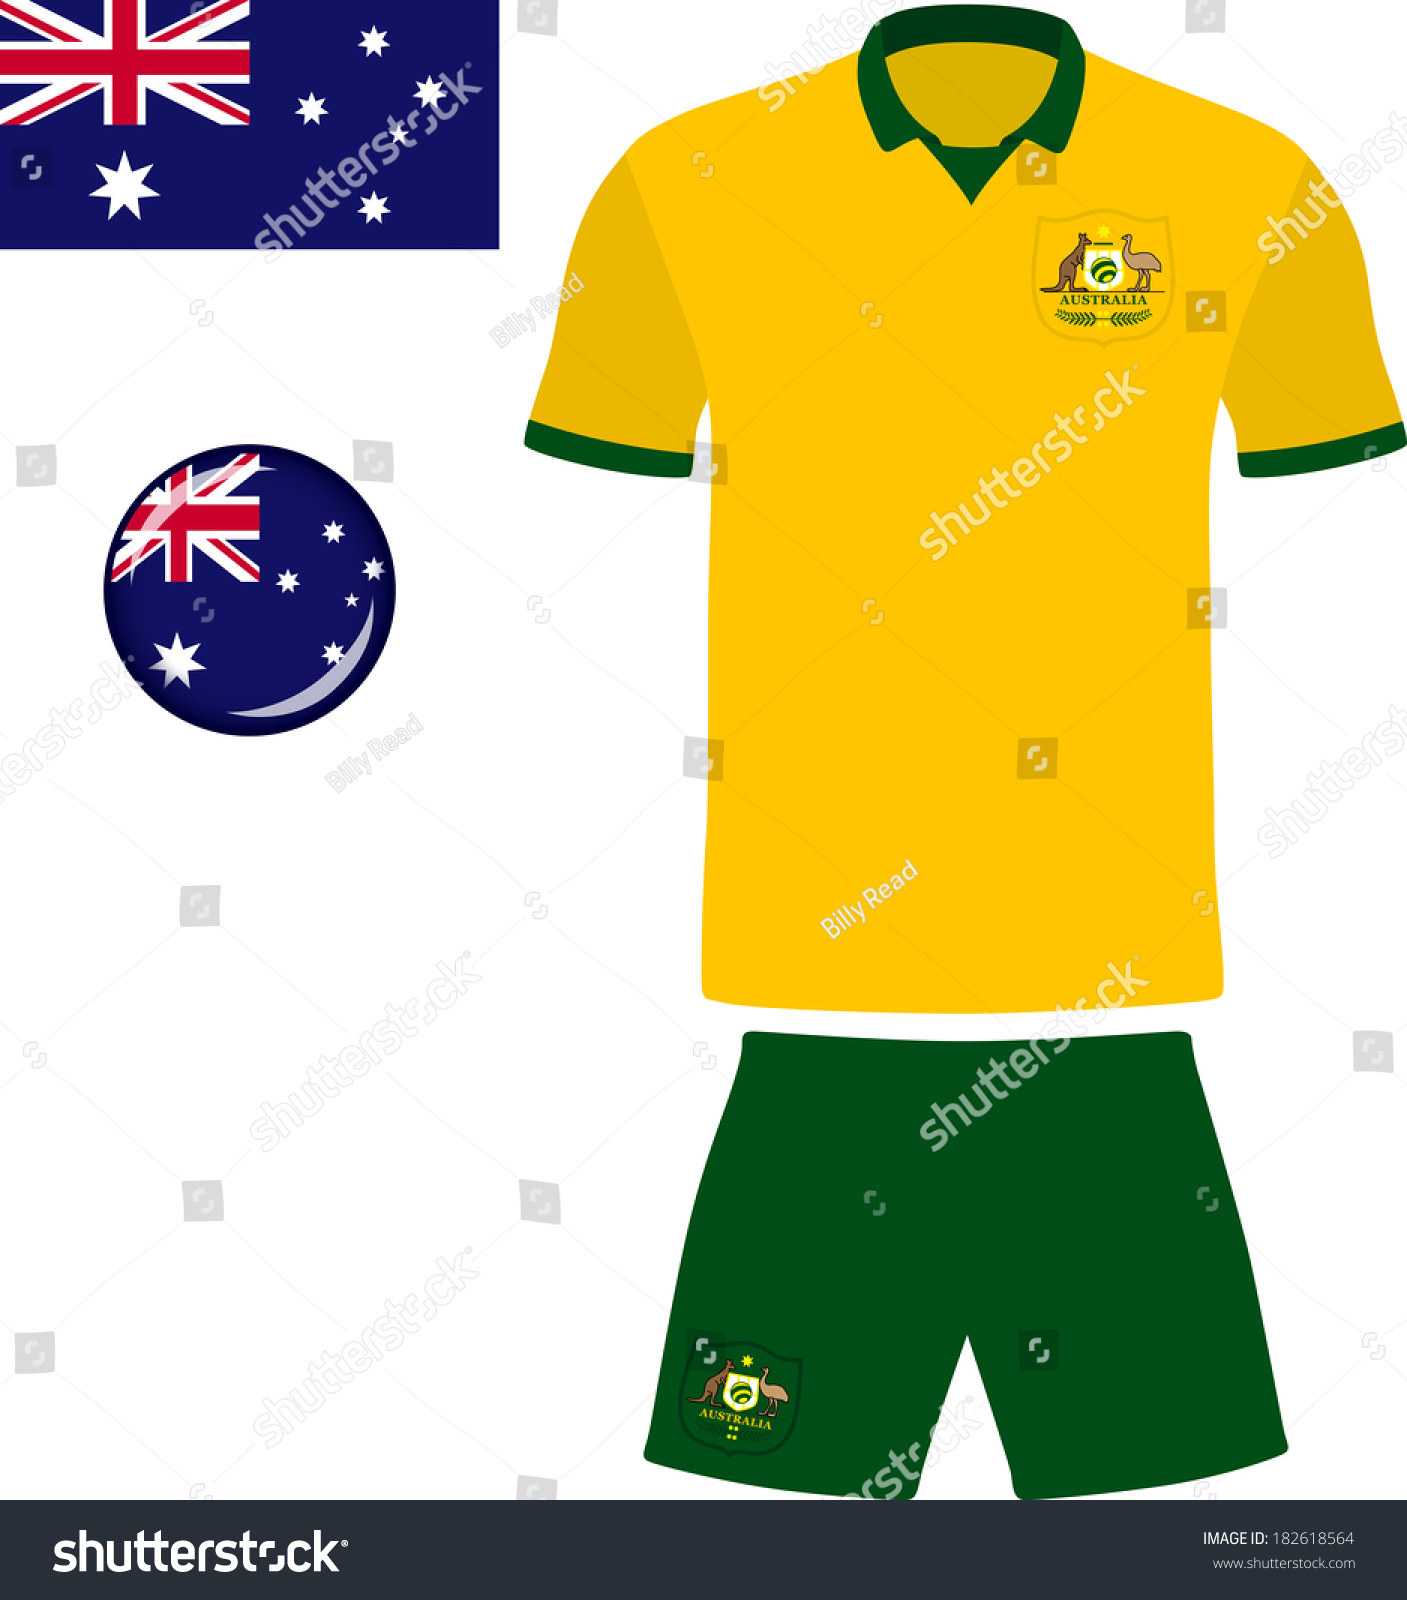 6b12cf81e Australia Football Soccer Jersey. Abstract vector image of the Australian  football team kit